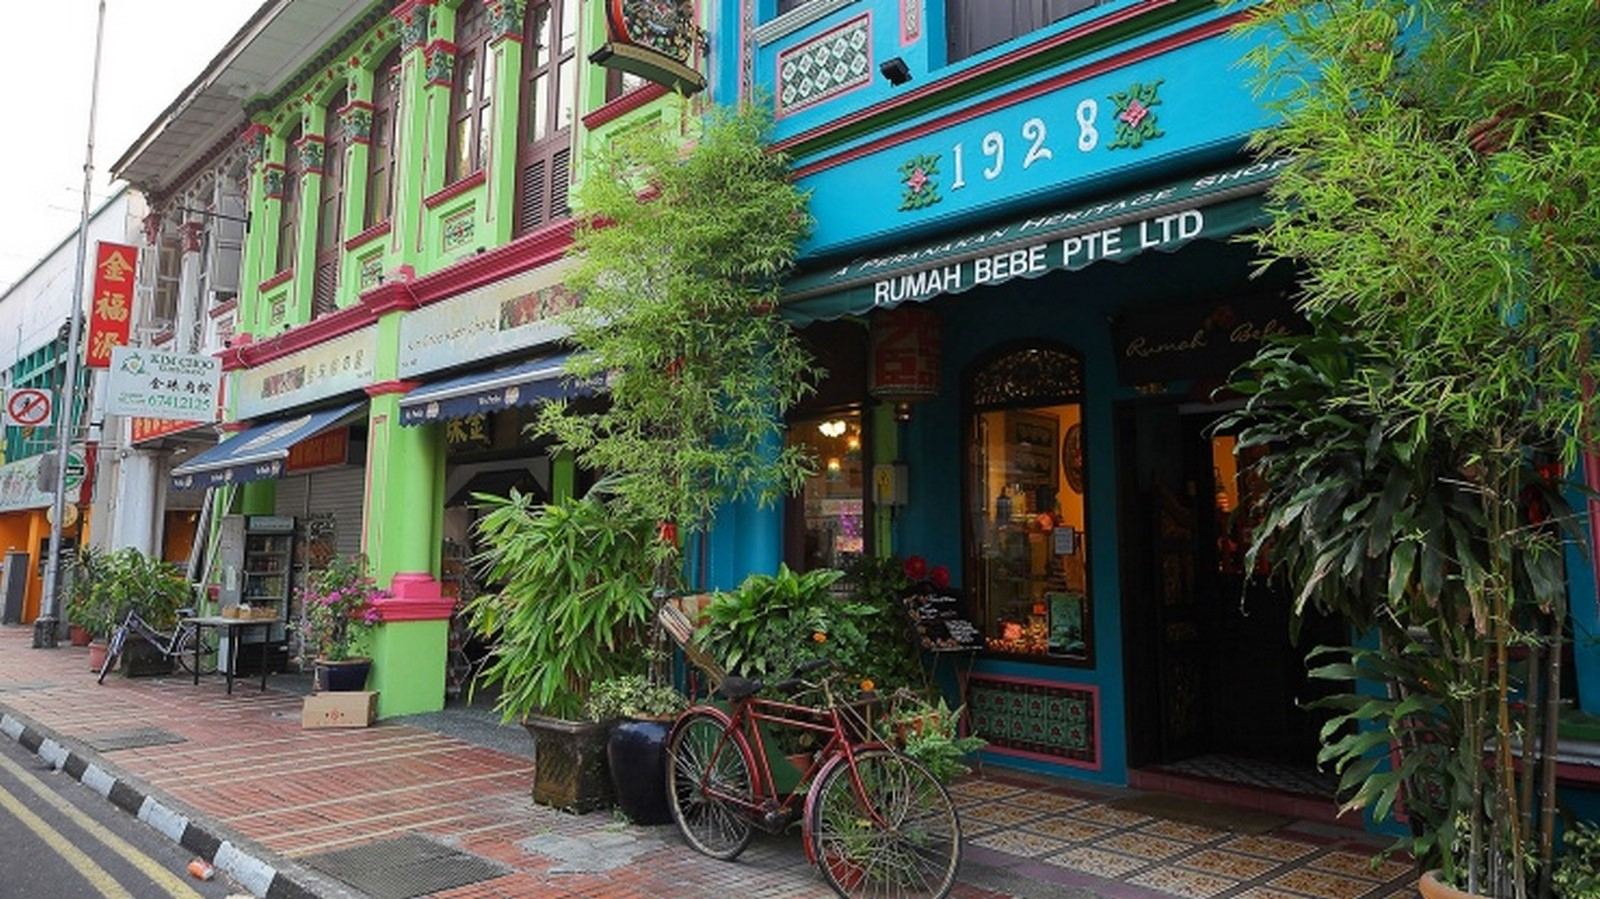 Architecture in Singapore -Shophouses - Sheet3